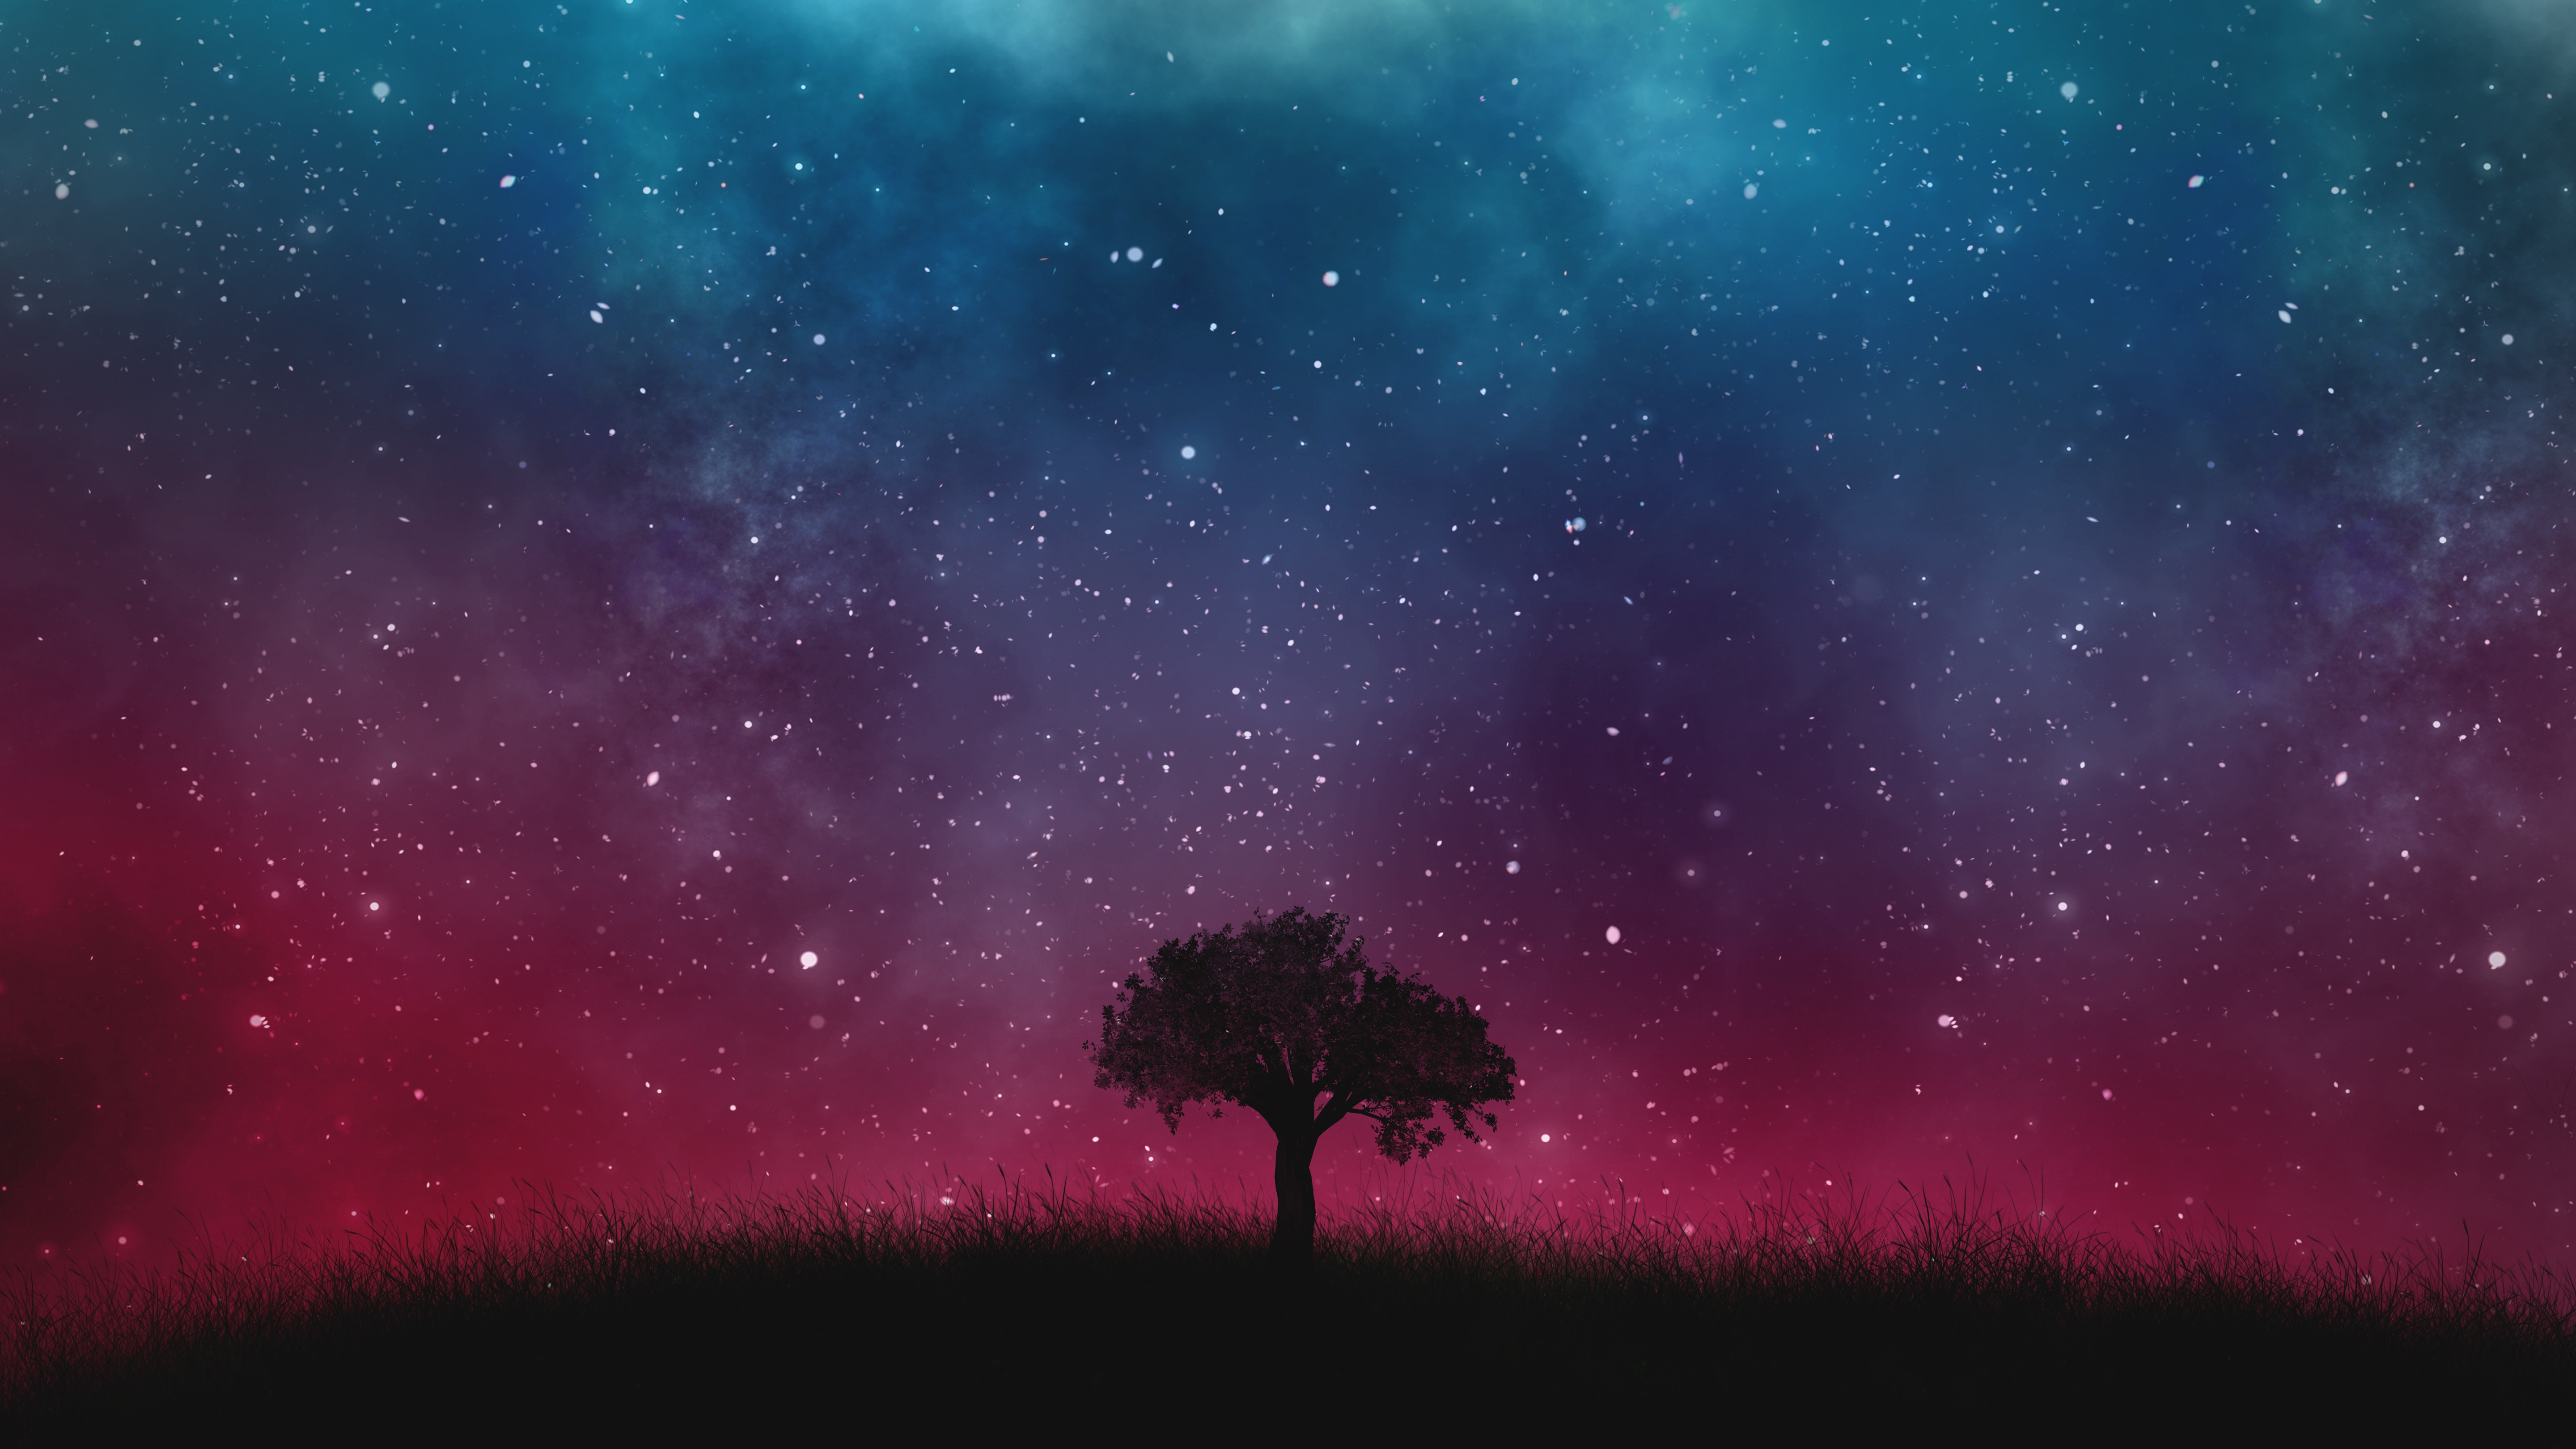 134653 download wallpaper Night, Vector, Wood, Tree, Starry Sky screensavers and pictures for free